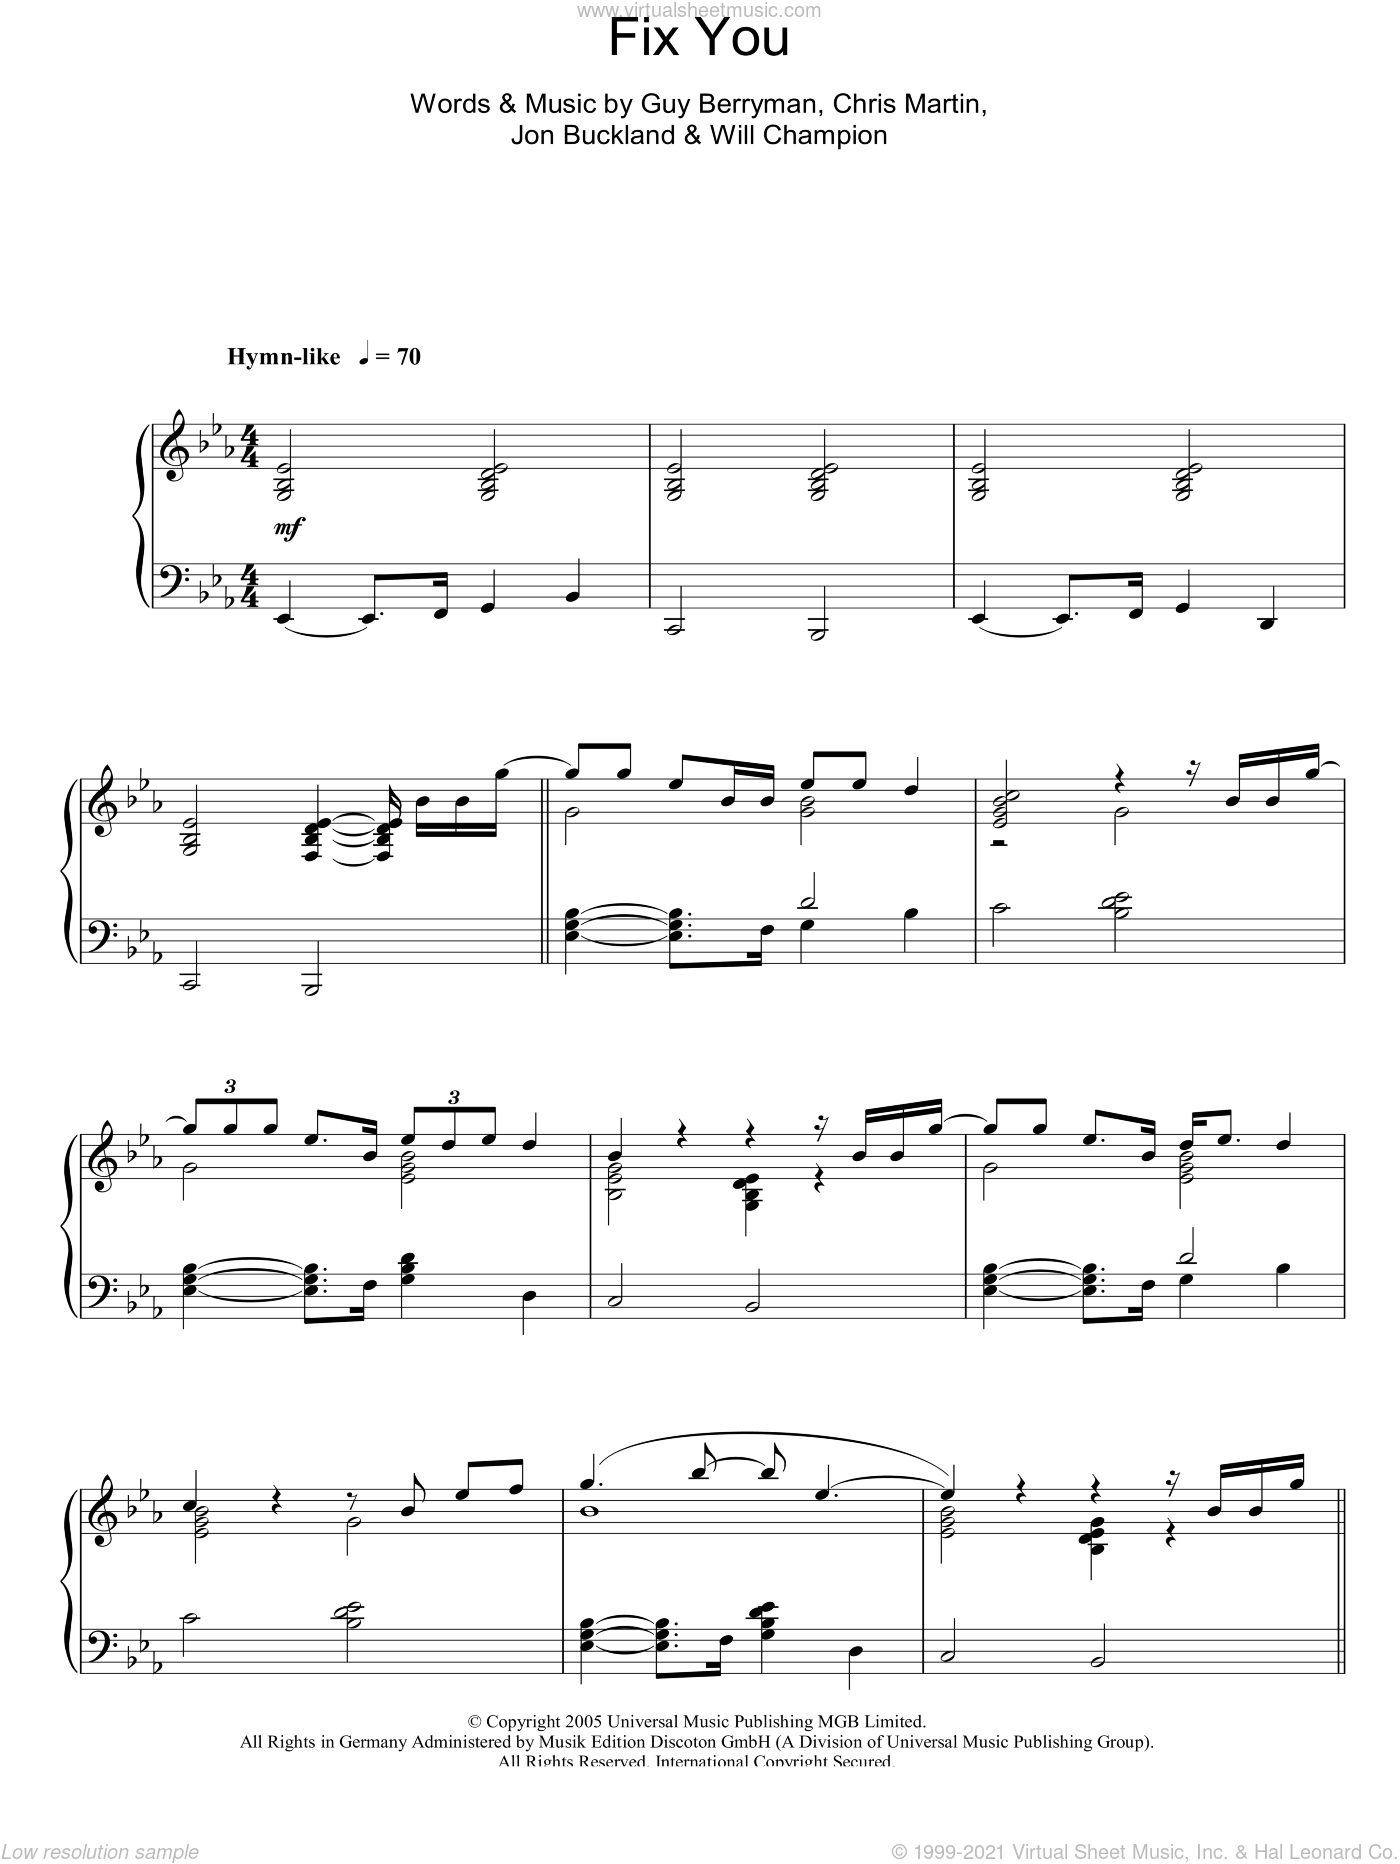 Fix You sheet music for piano solo by Coldplay, Chris Martin, Guy Berryman, Jon Buckland and Will Champion, intermediate skill level